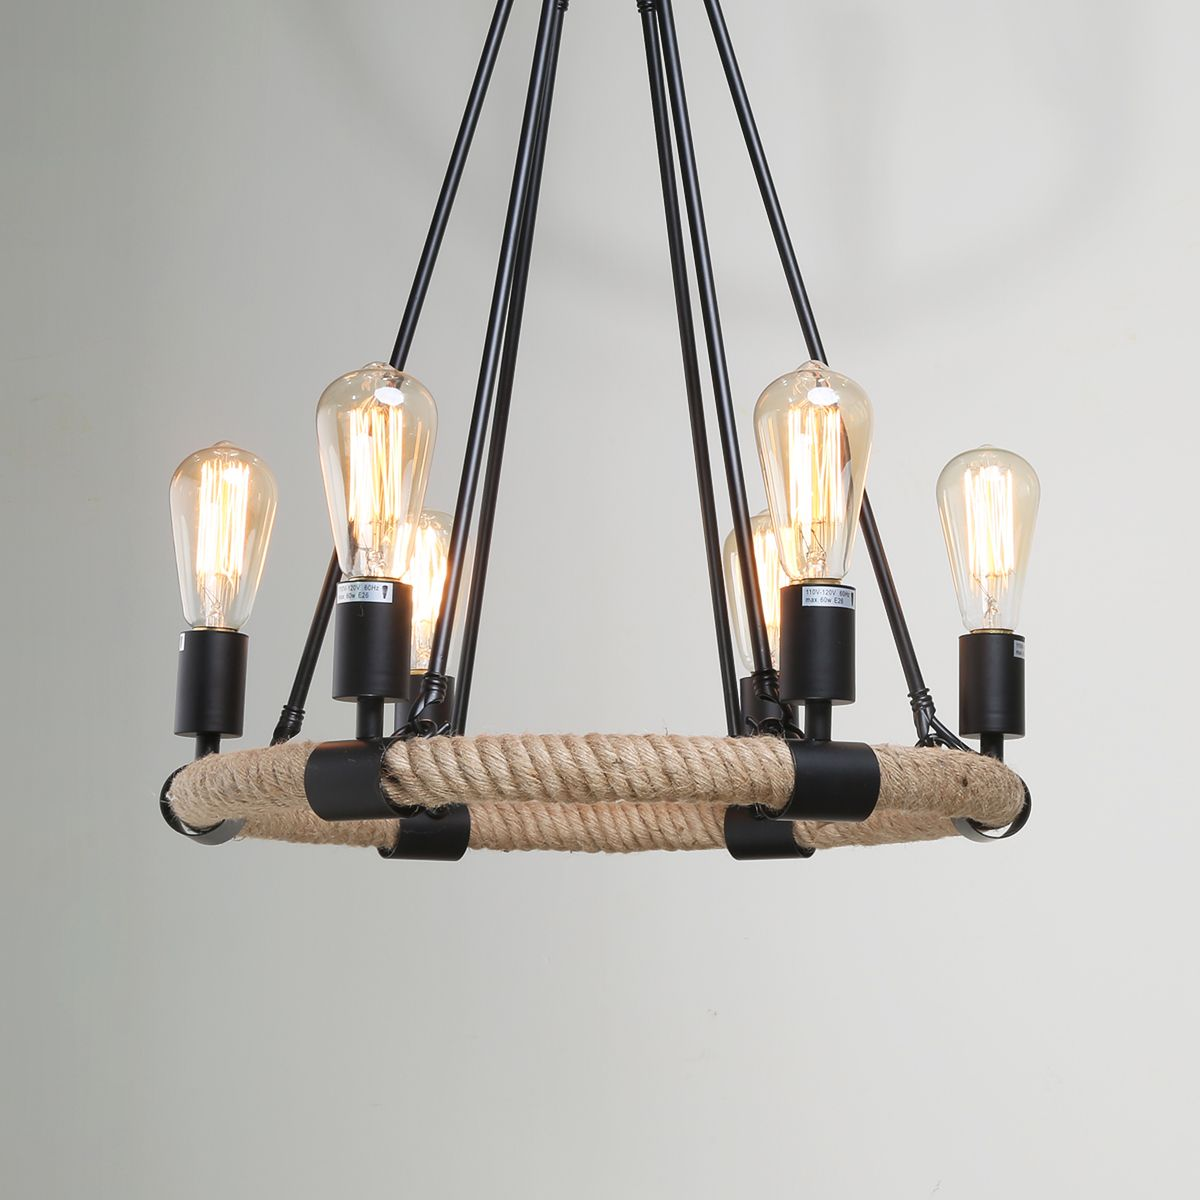 Rustic rope chandeliers transitional lighting pinteres pinterest